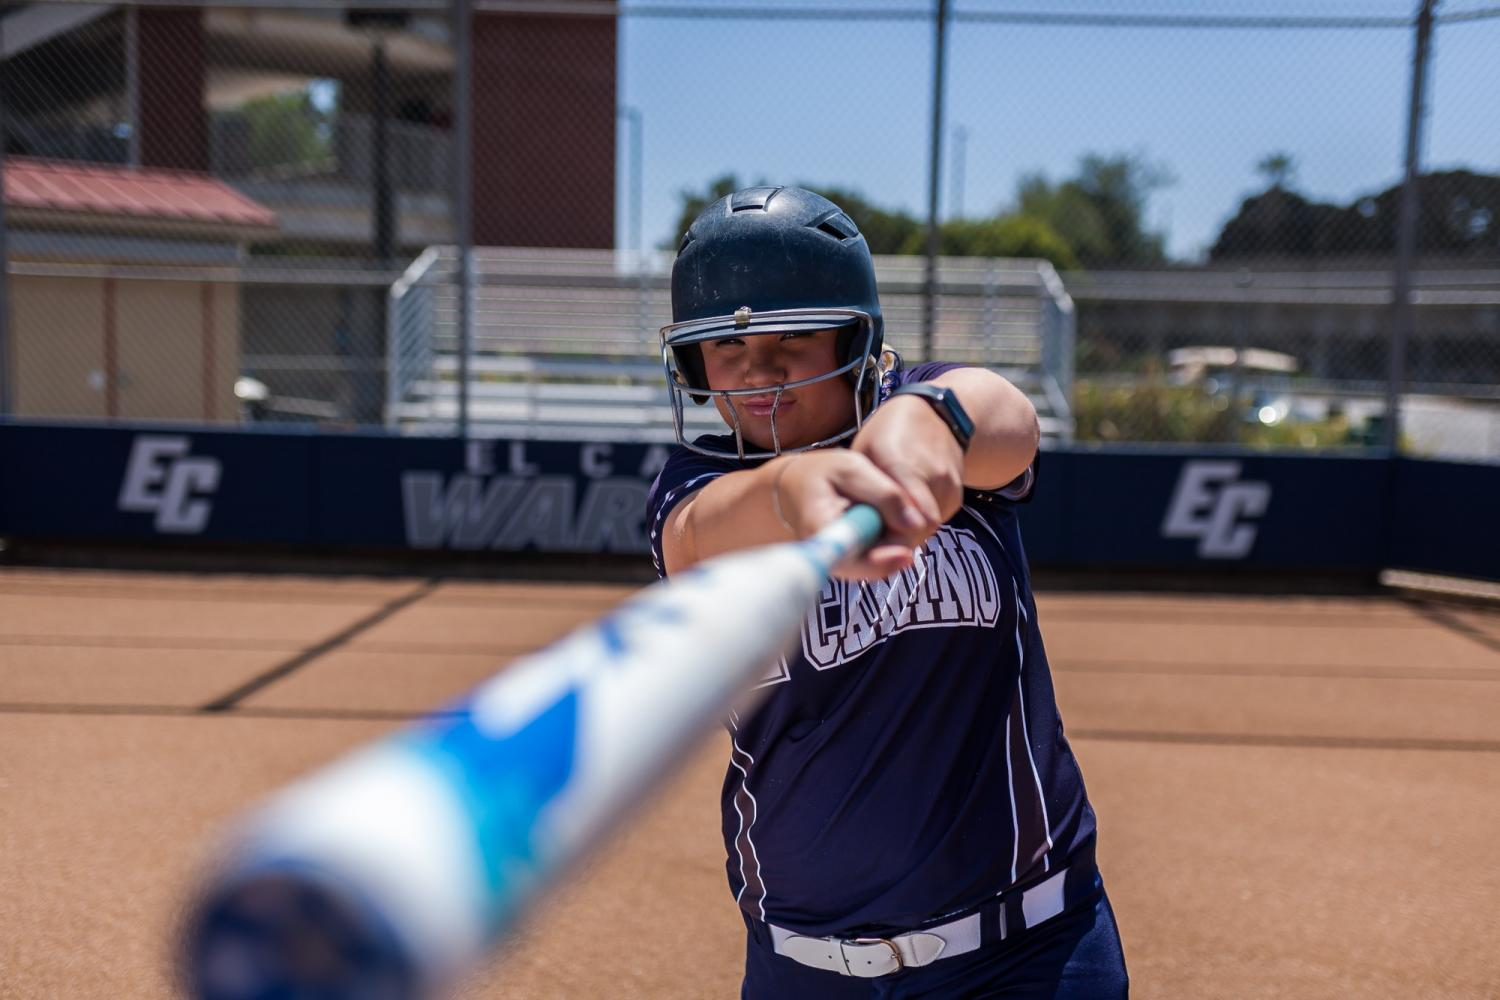 Sophomore+first+baseman+Kamryn+Fisher+earned+Honorable+Mention+from+the+California+Community+College+Athletic+Association.+Photo+credit%3A+John+Lopez